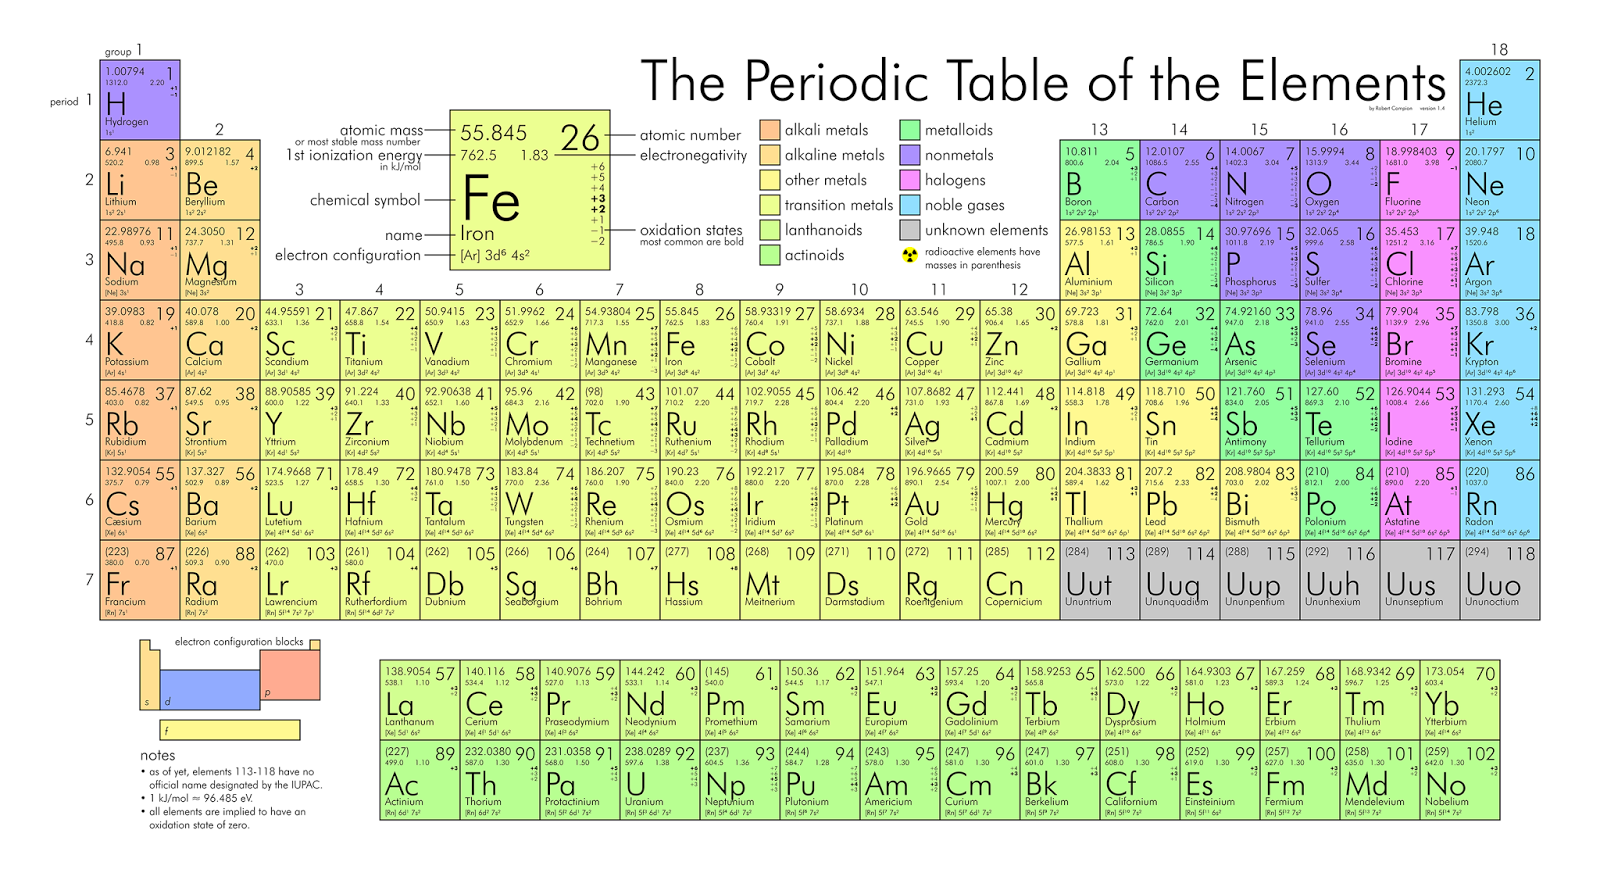 Periodic table solid liquid gas choice image periodic table images underbelly periodic table of the elements the number int the top left of each box is gamestrikefo Image collections